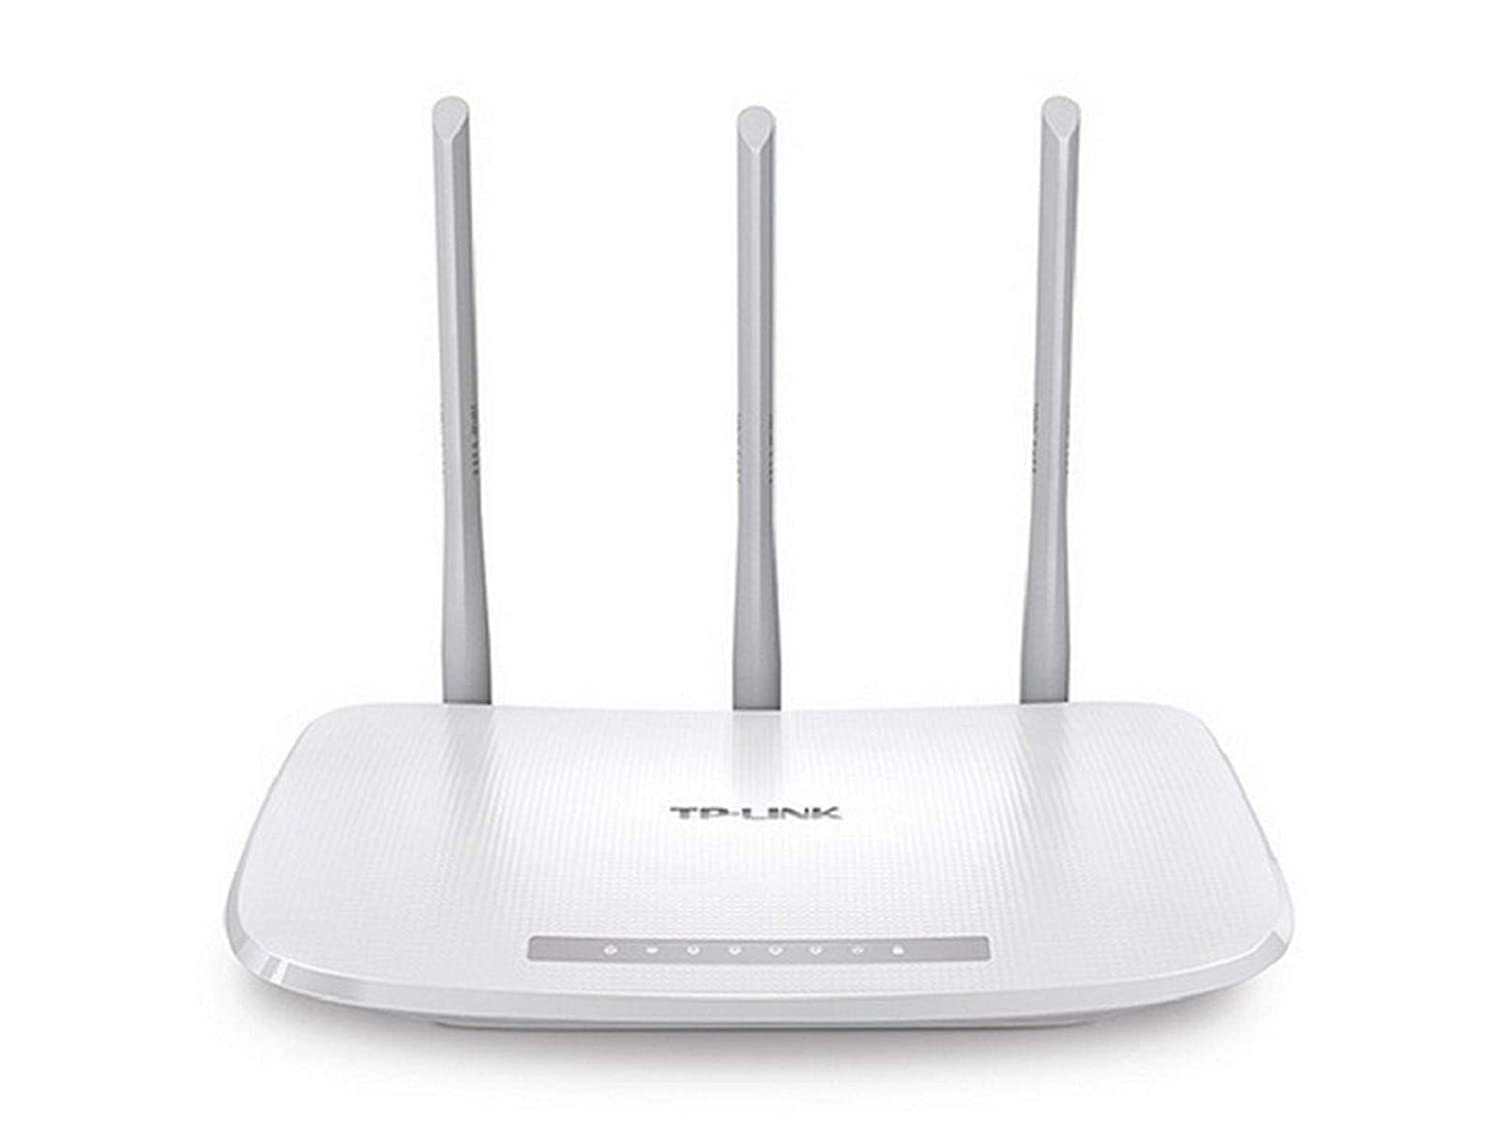 TP-Link TL-WR845N 300Mbps Wireless-N Router (White)